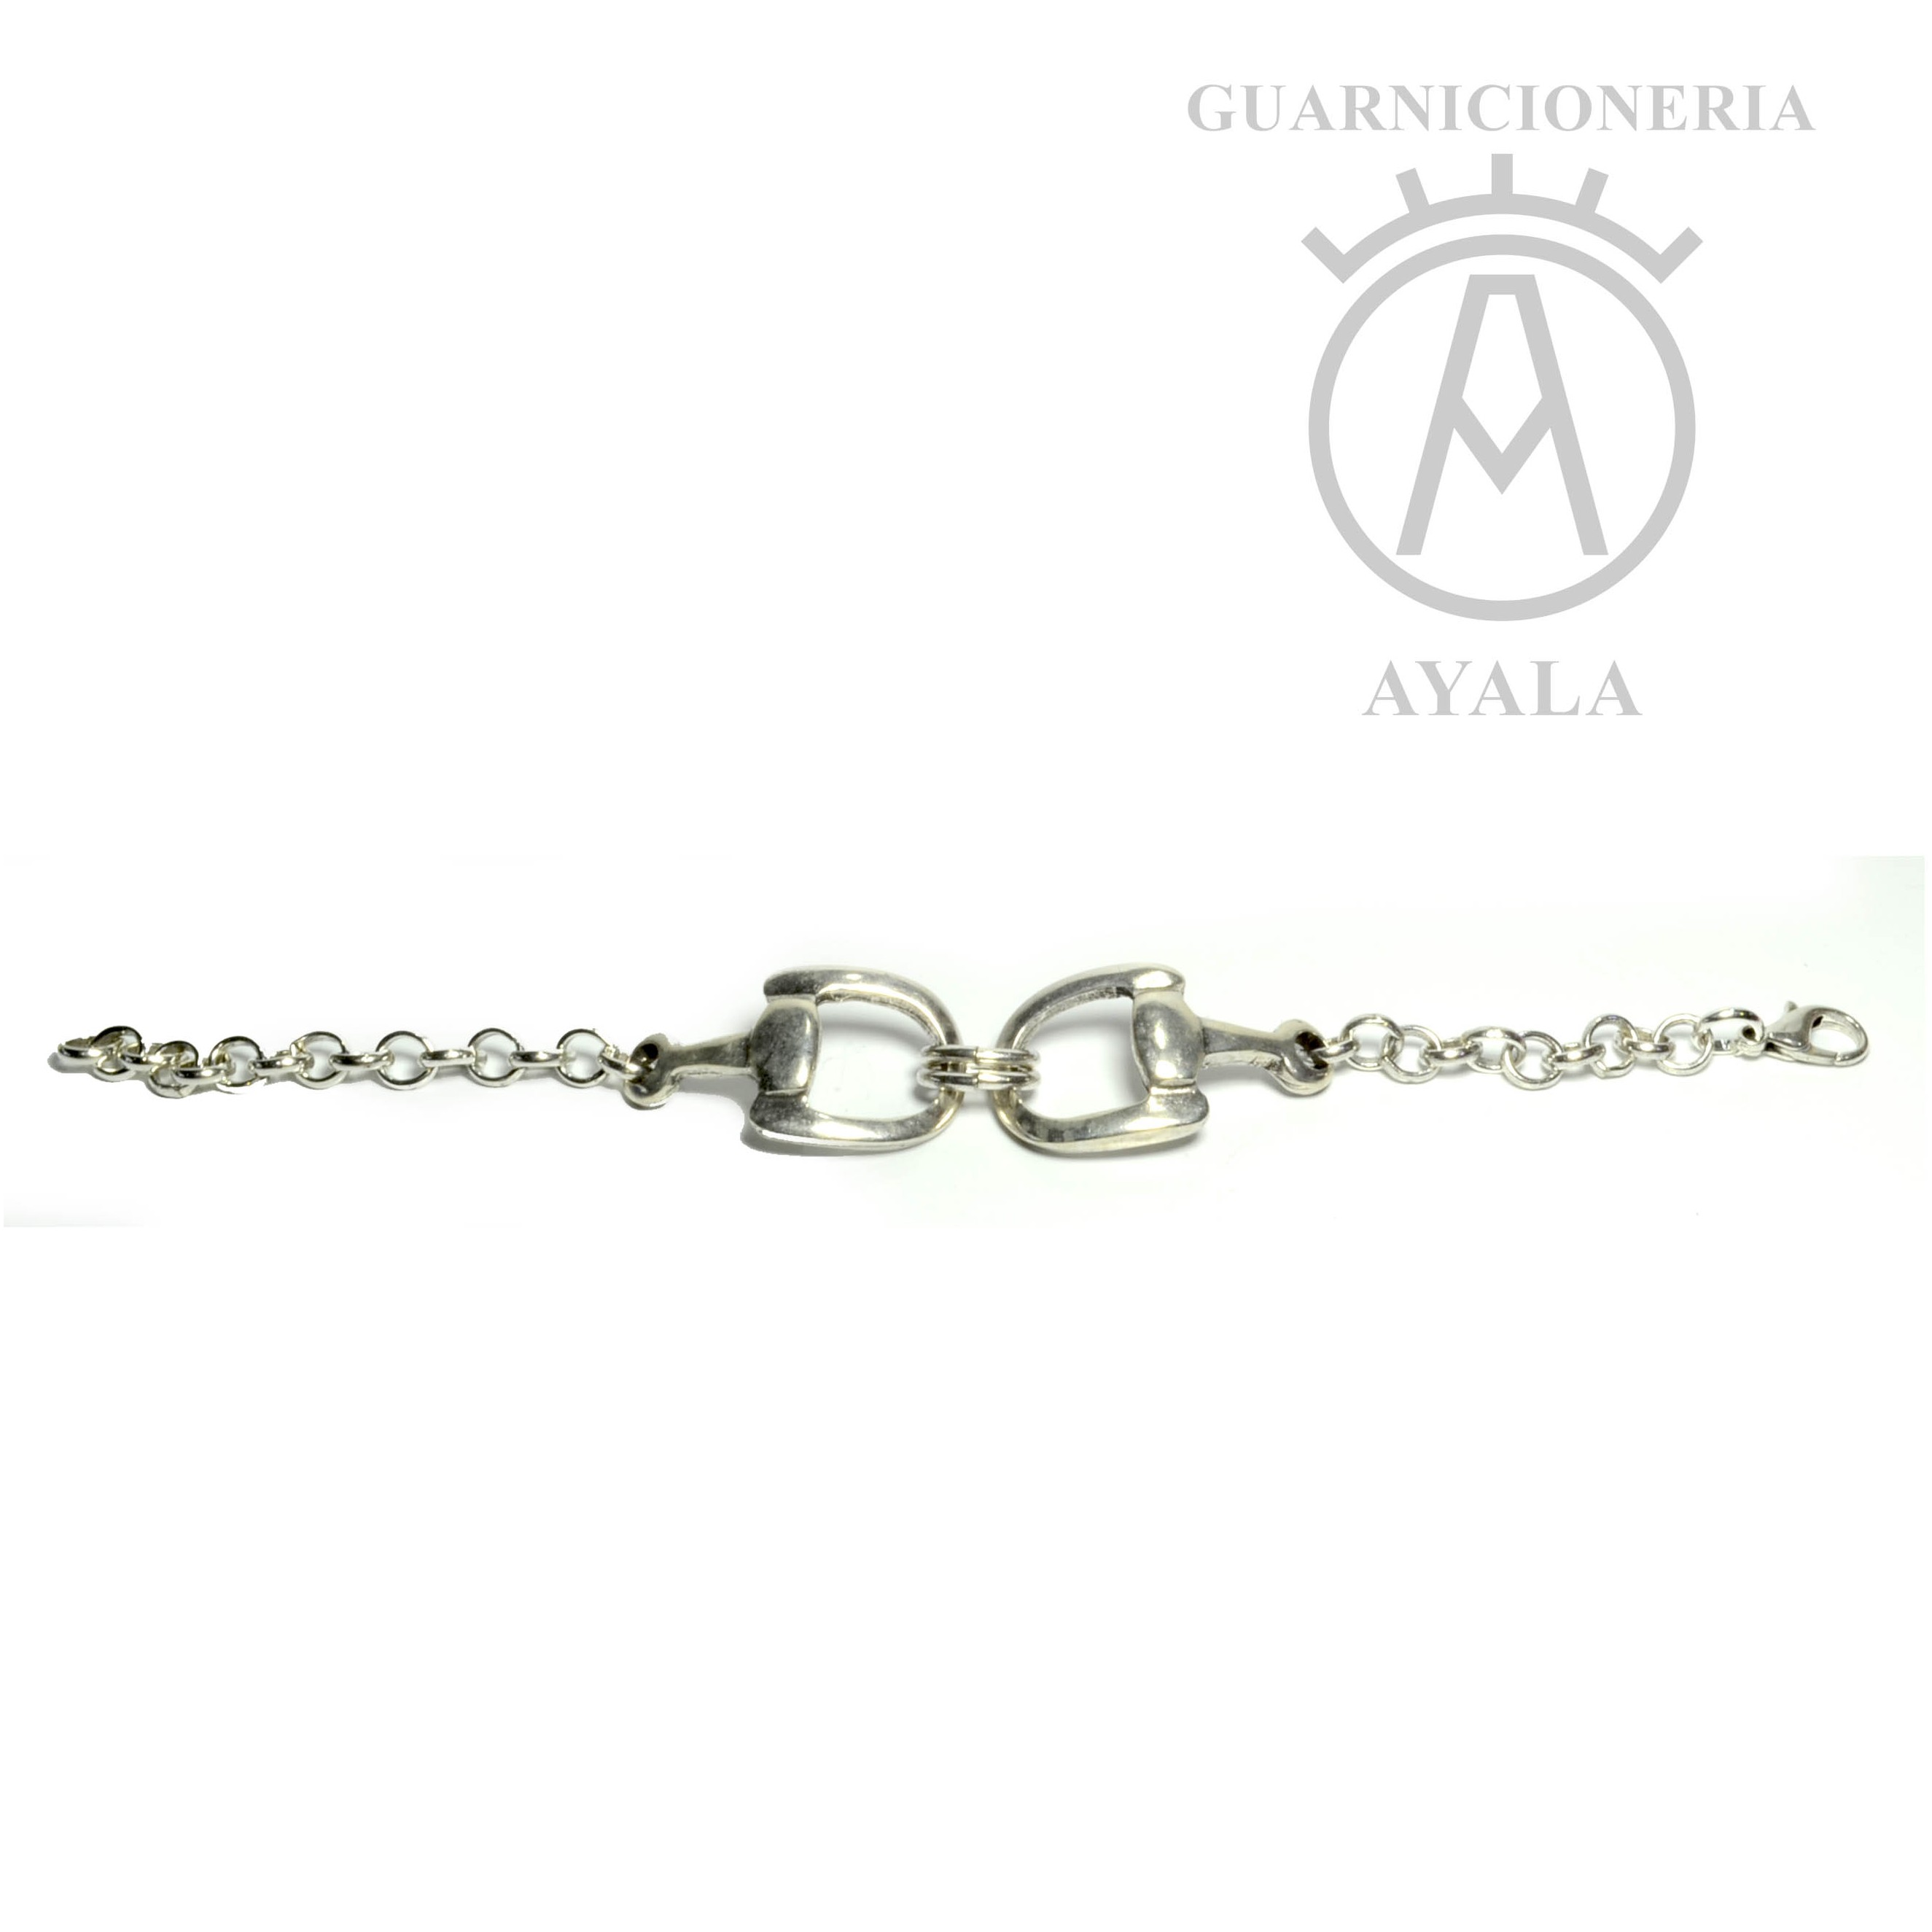 PULSERA FILETE